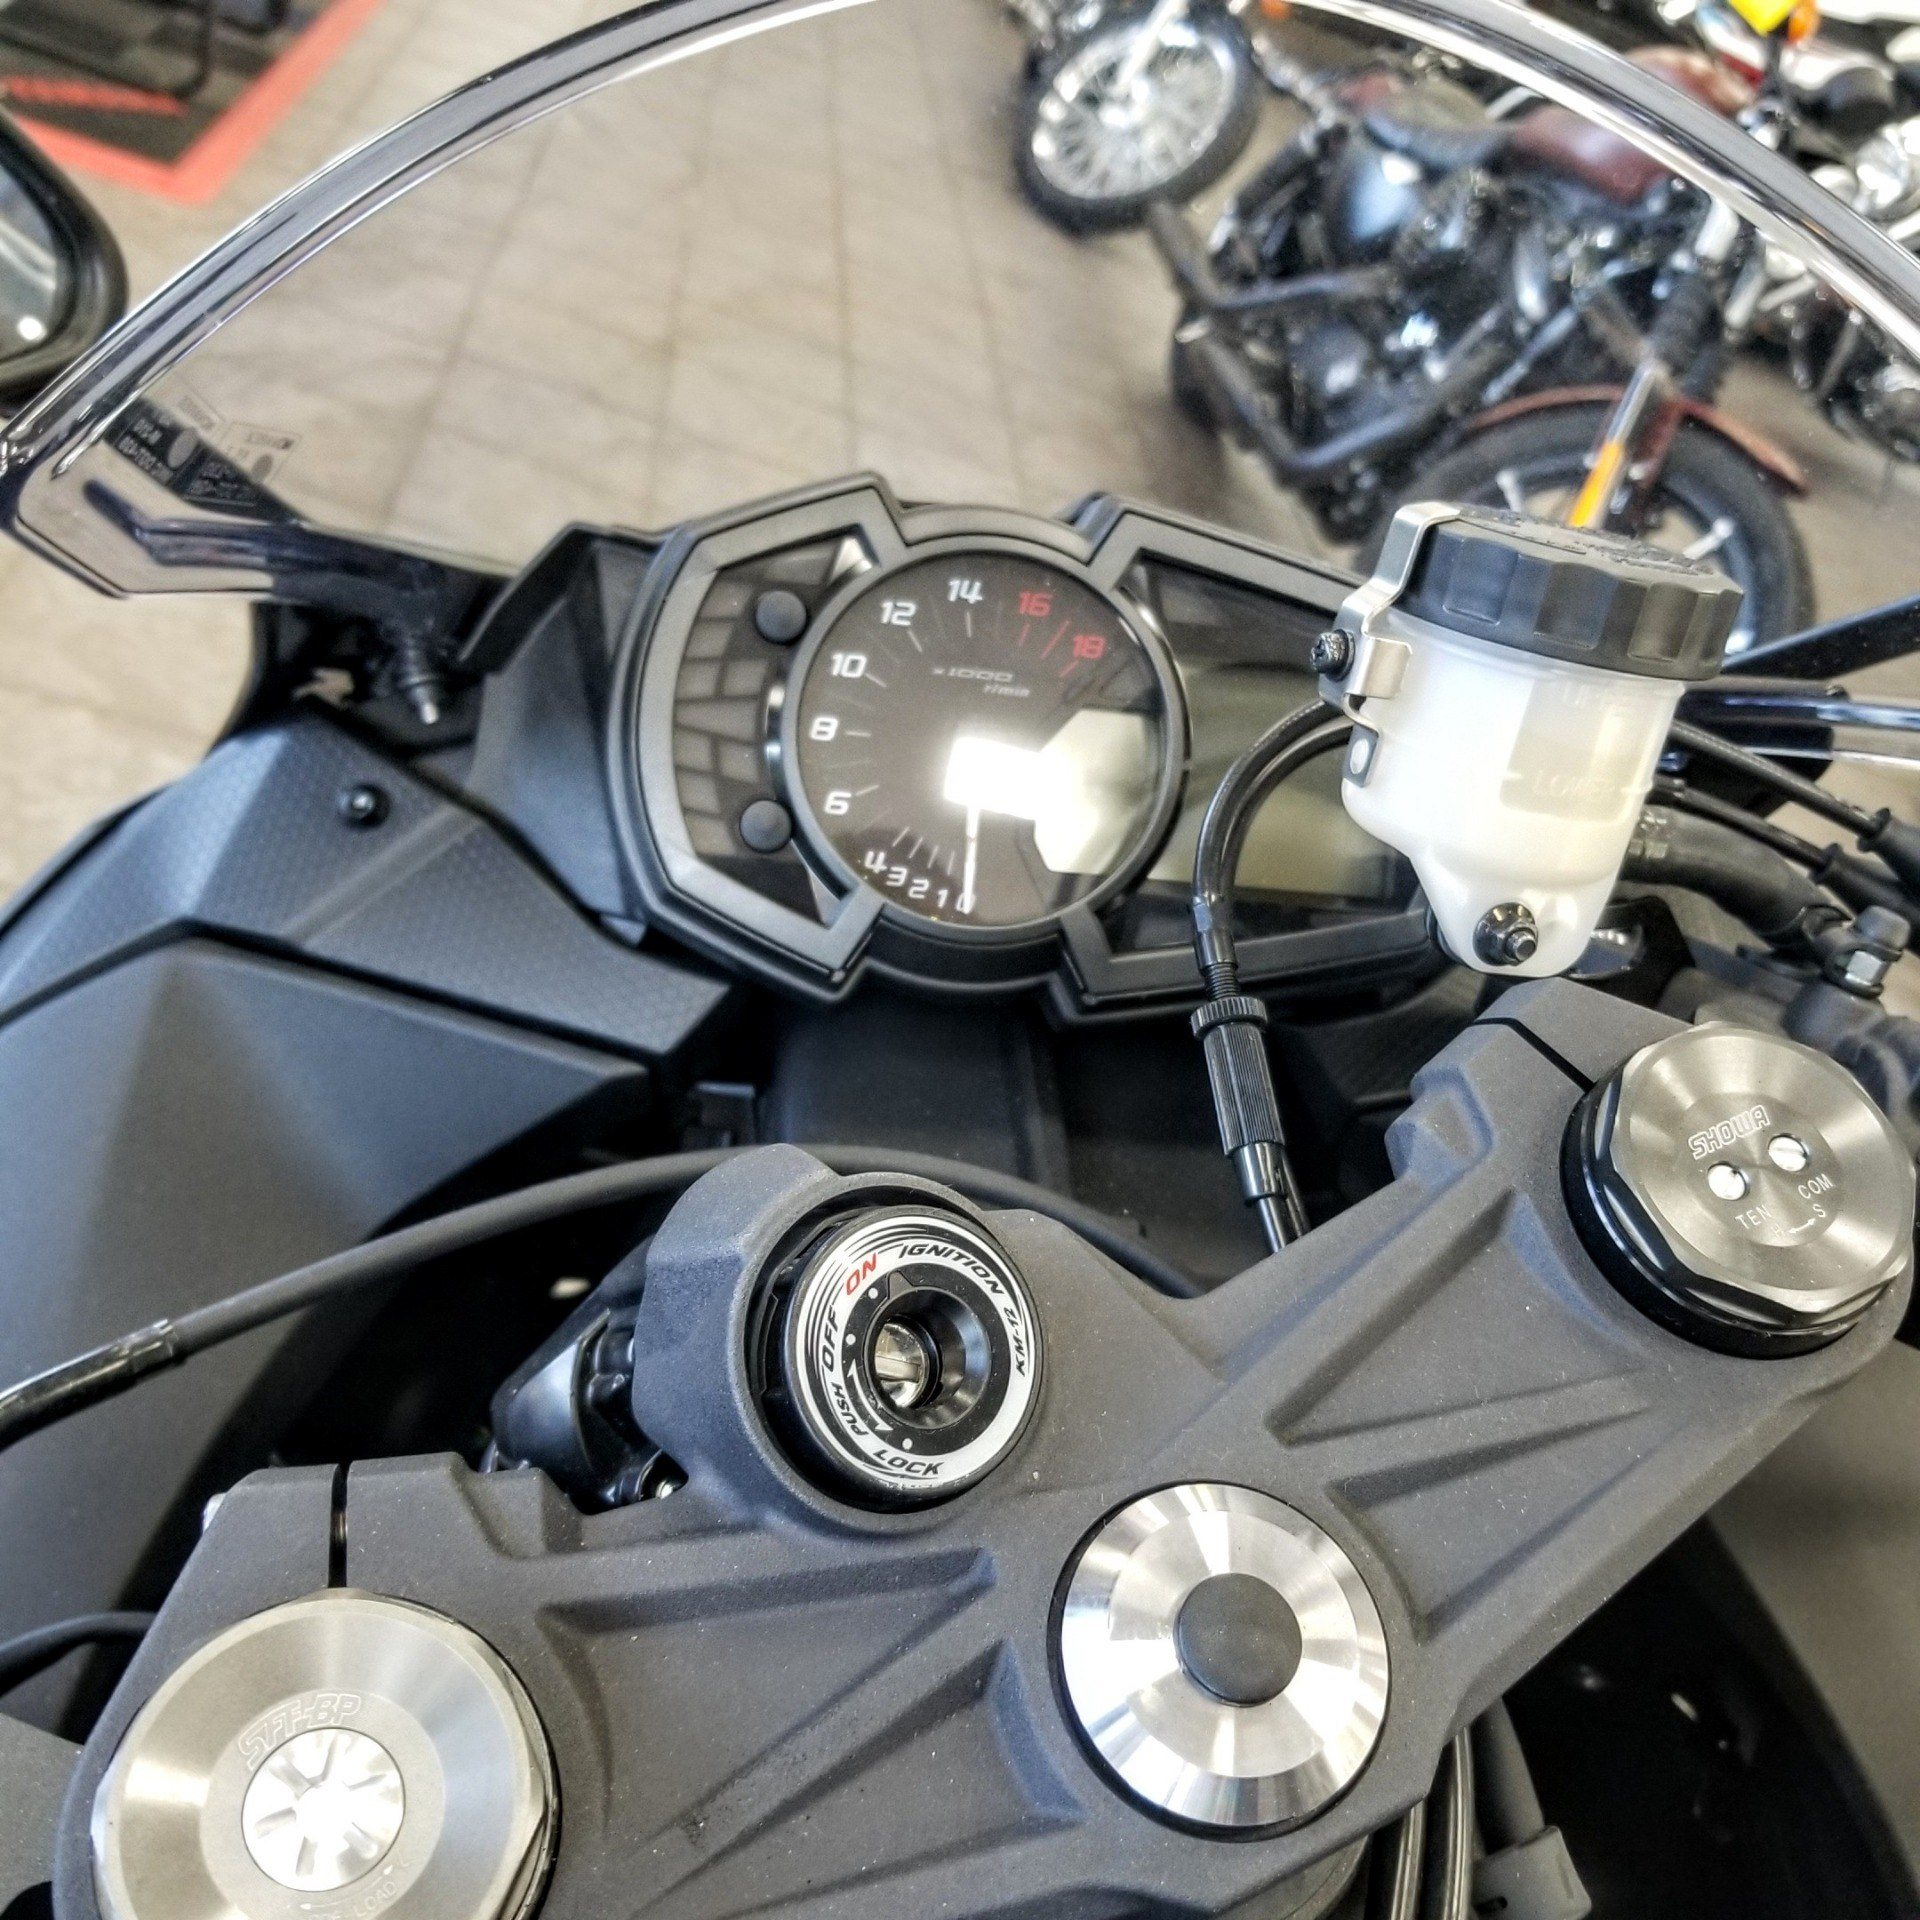 2019 Kawasaki NINJA ZX-6R in Hickory, North Carolina - Photo 9